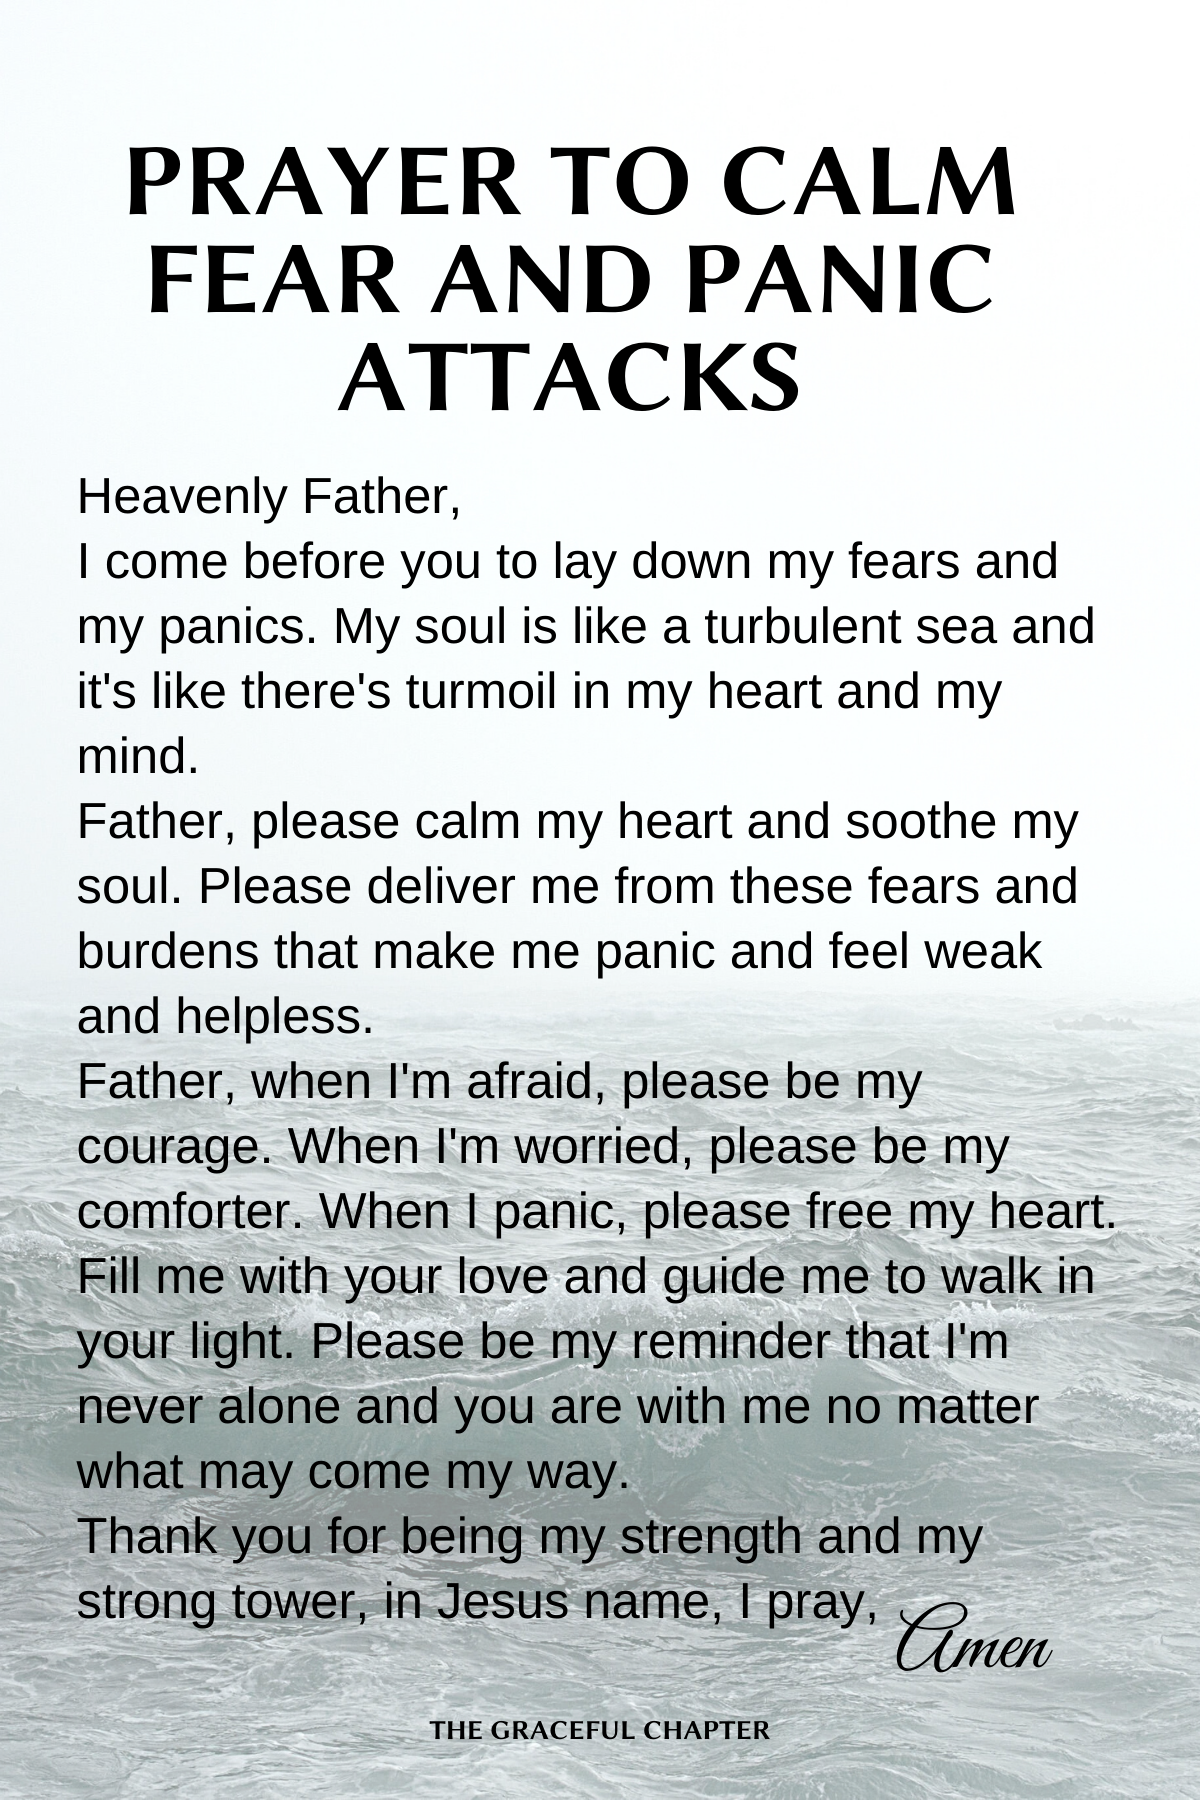 Prayer to calm fear and panic attacks